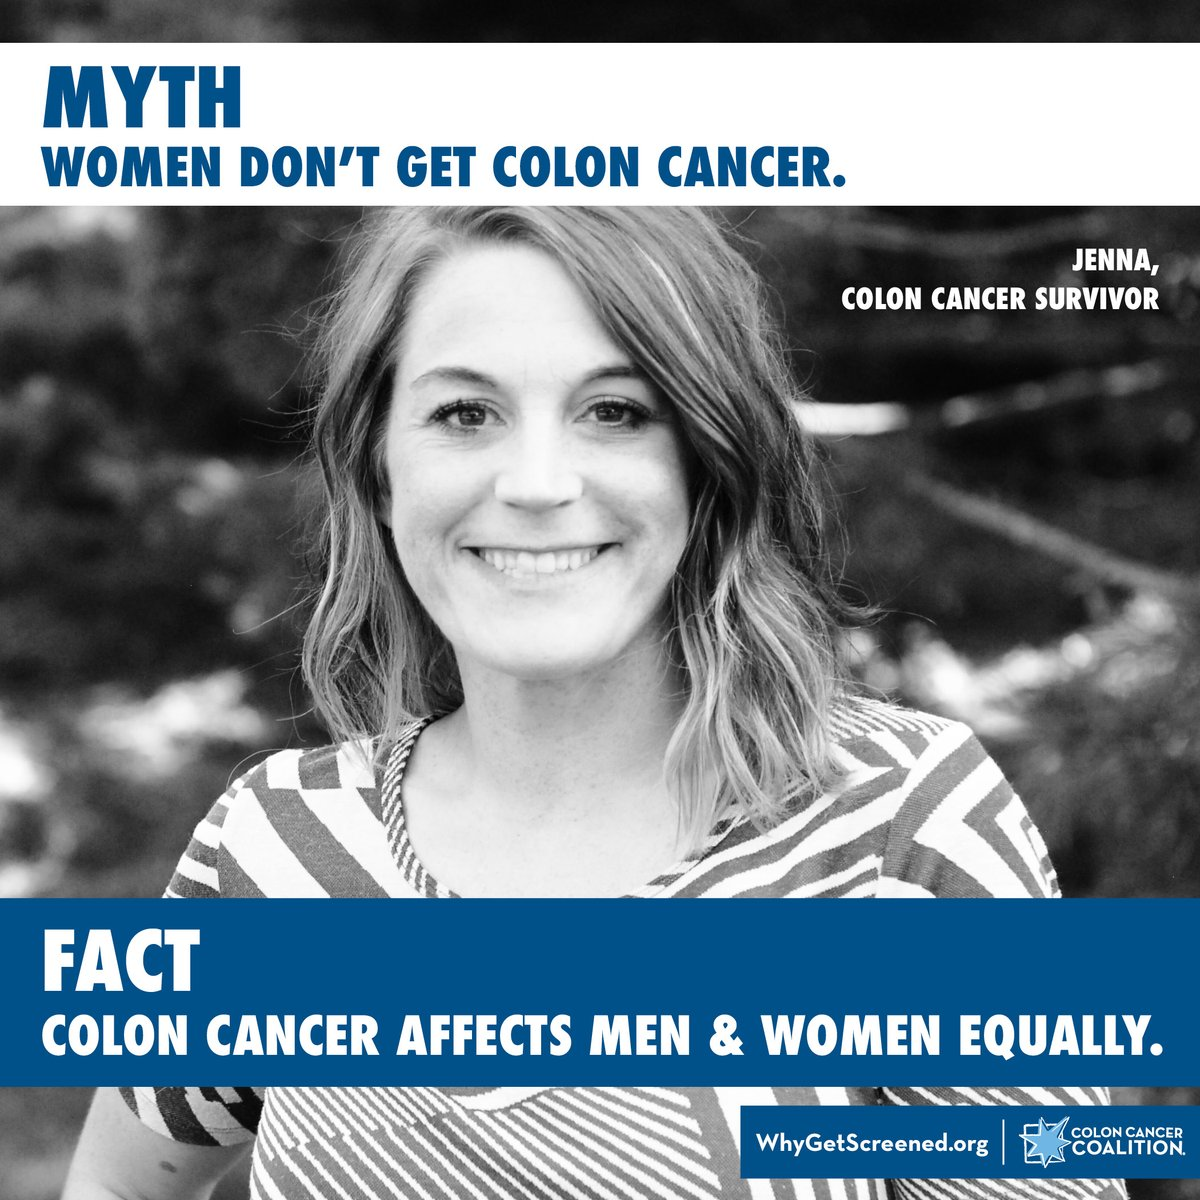 Men and women are at equal risk of developing colon or rectal cancer. ow.ly/WFaf50xc7pV